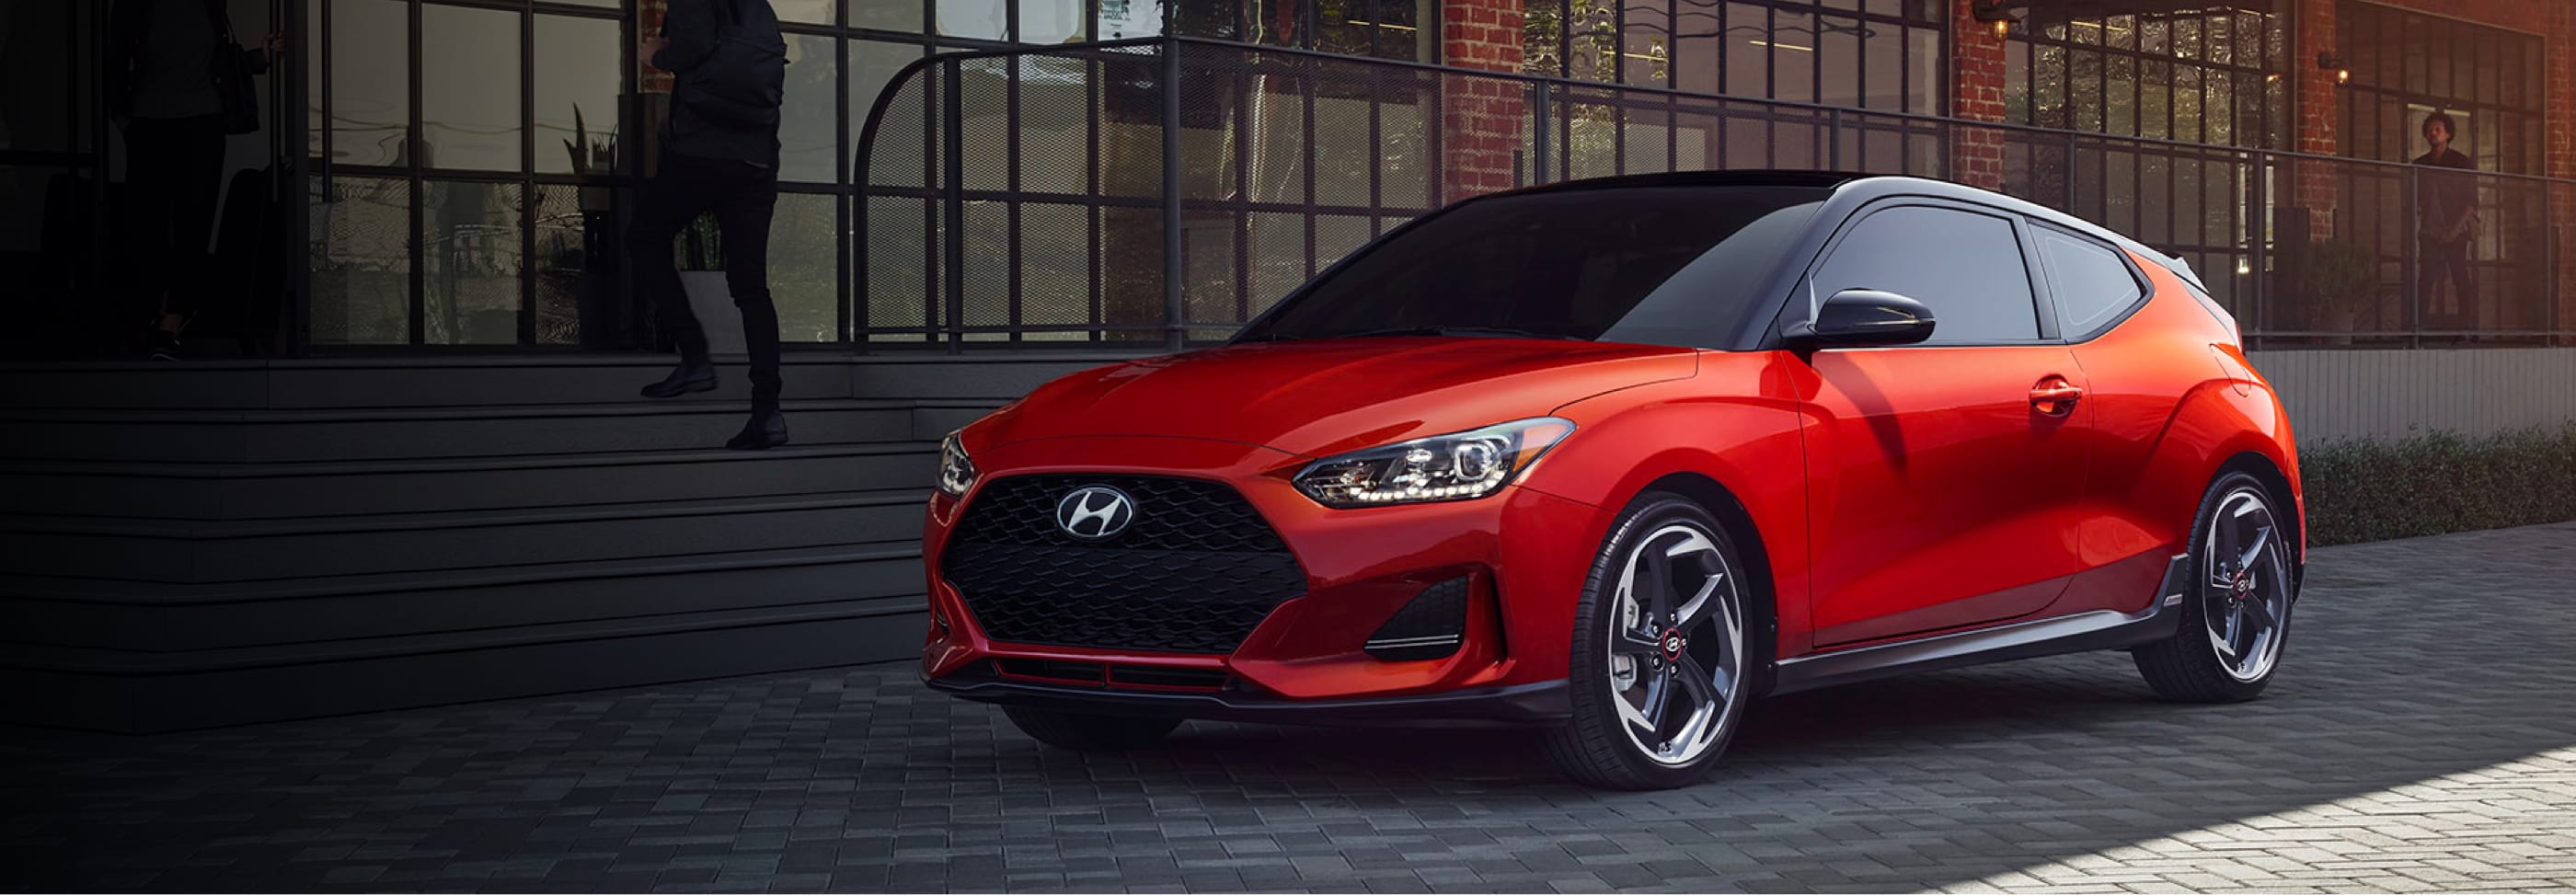 A red 2020 Hyundai Veloster parked outside of a building